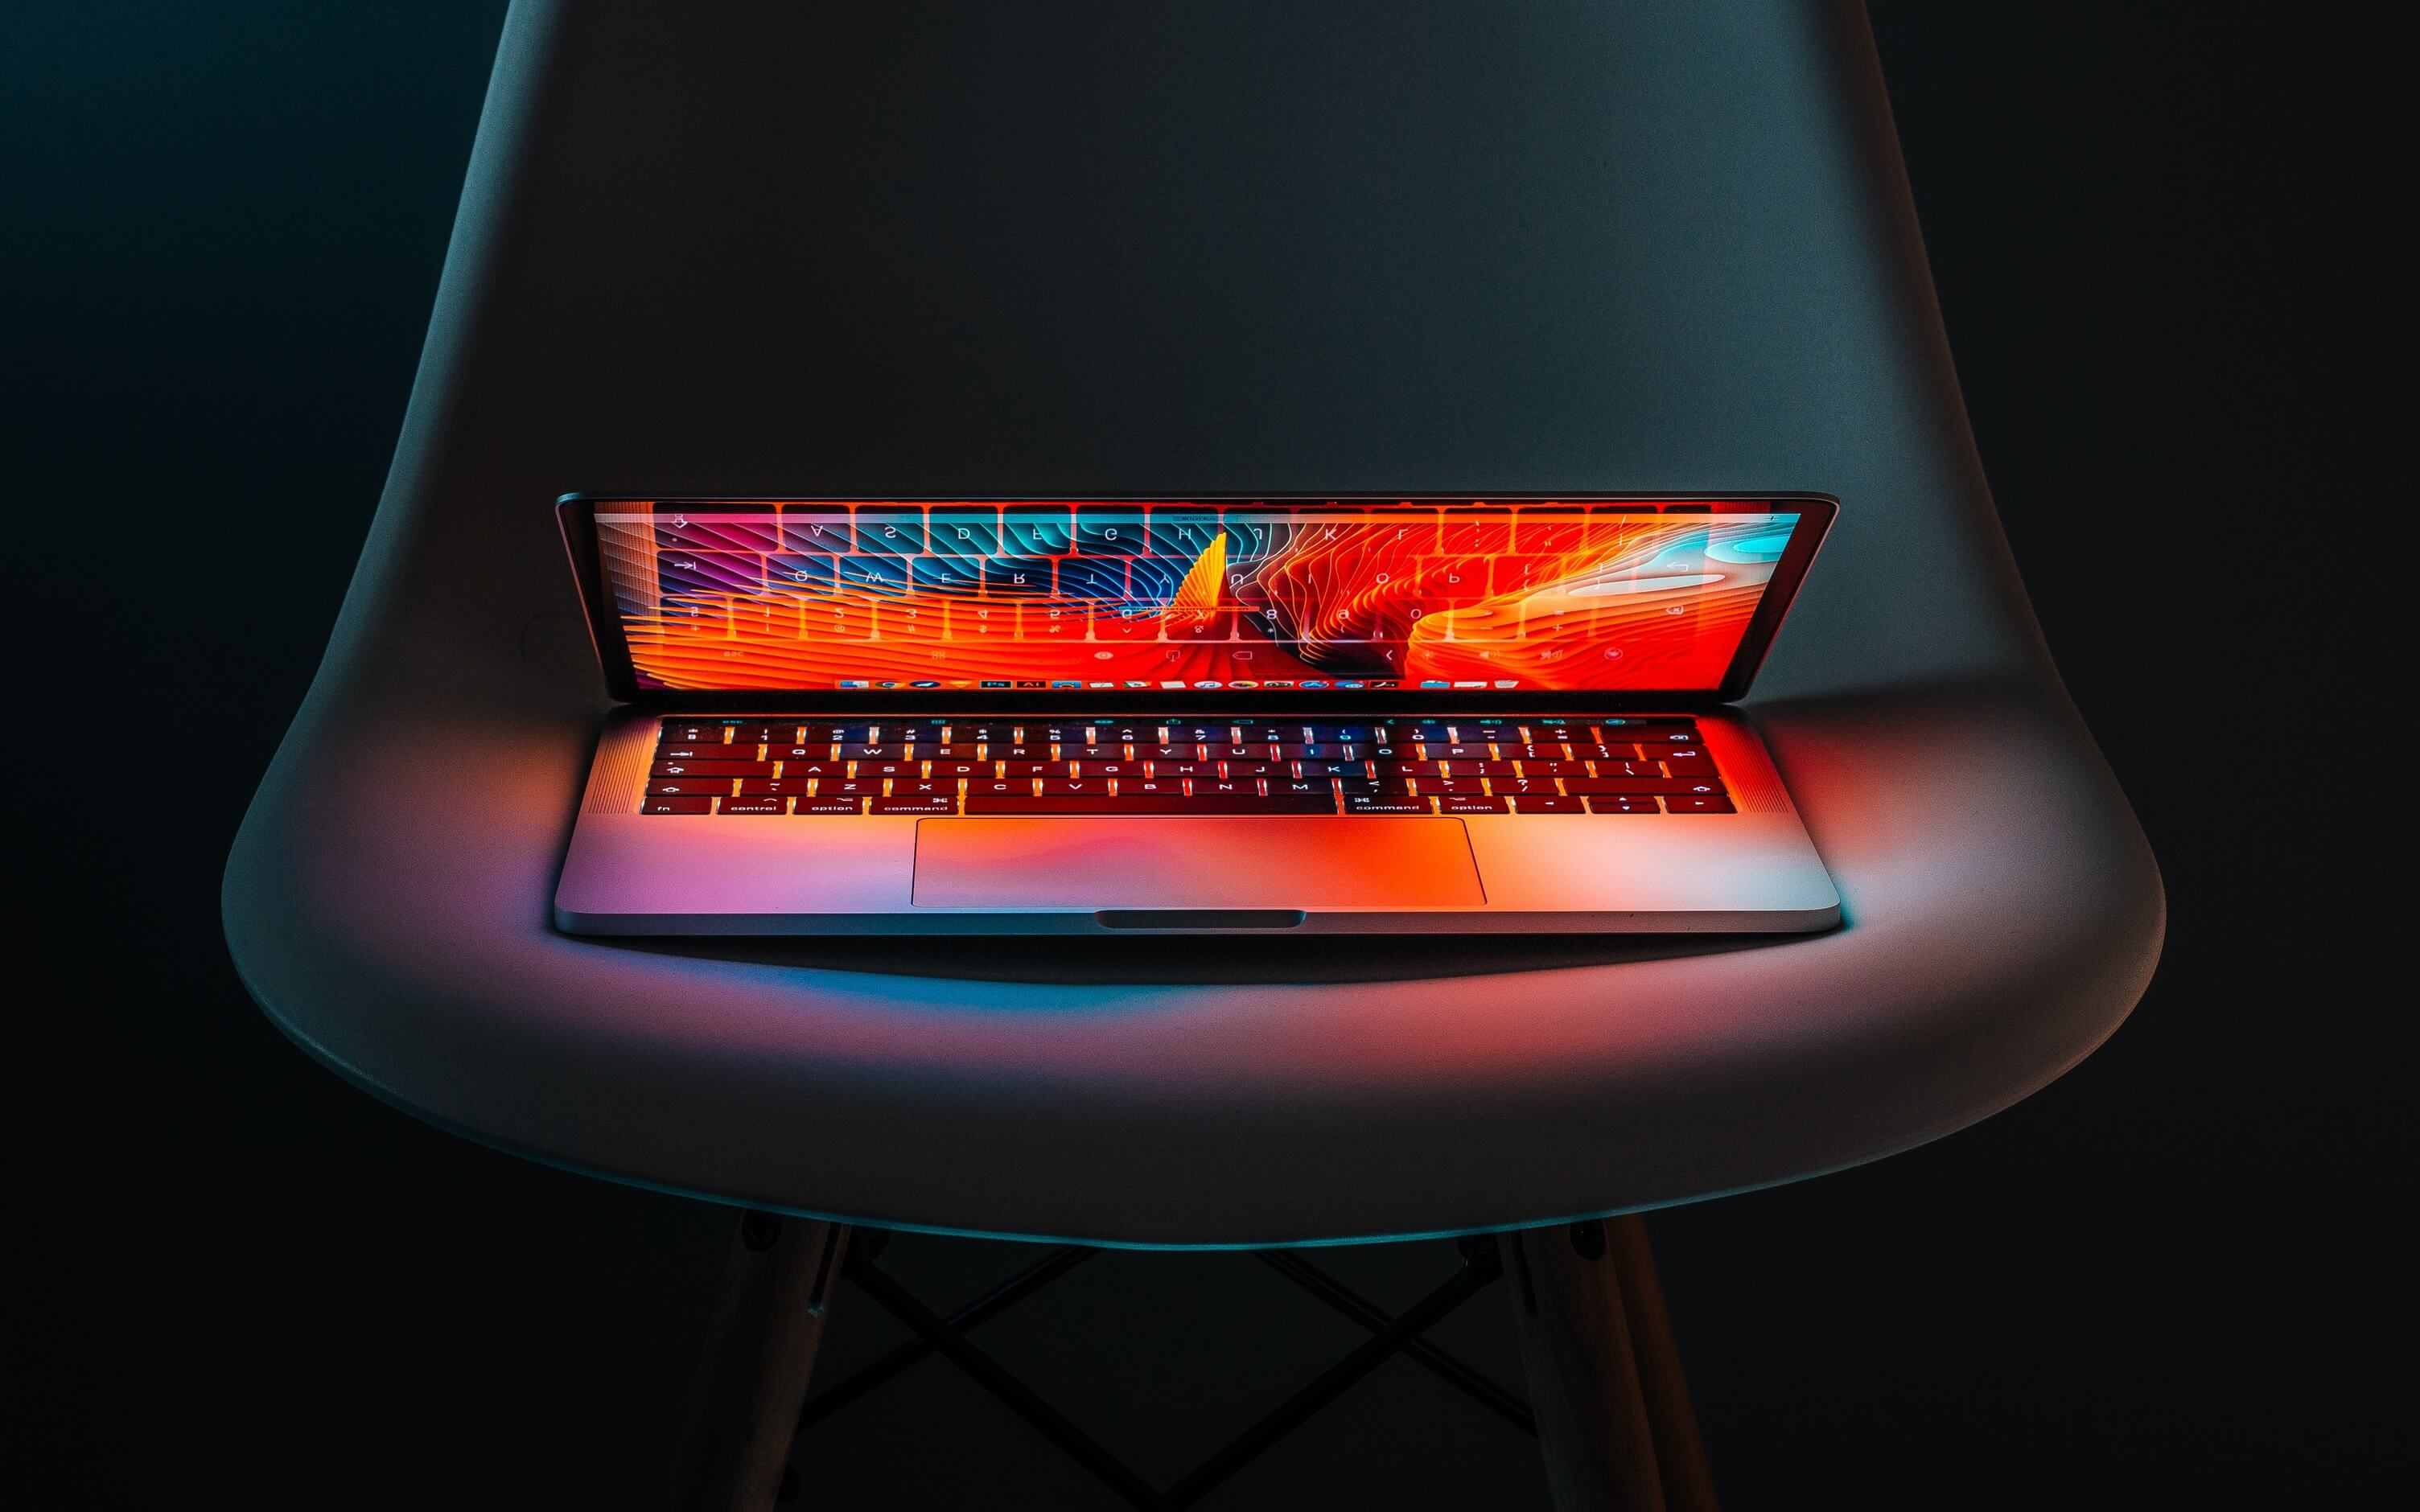 The Best Laptops 2019 - TechSpot